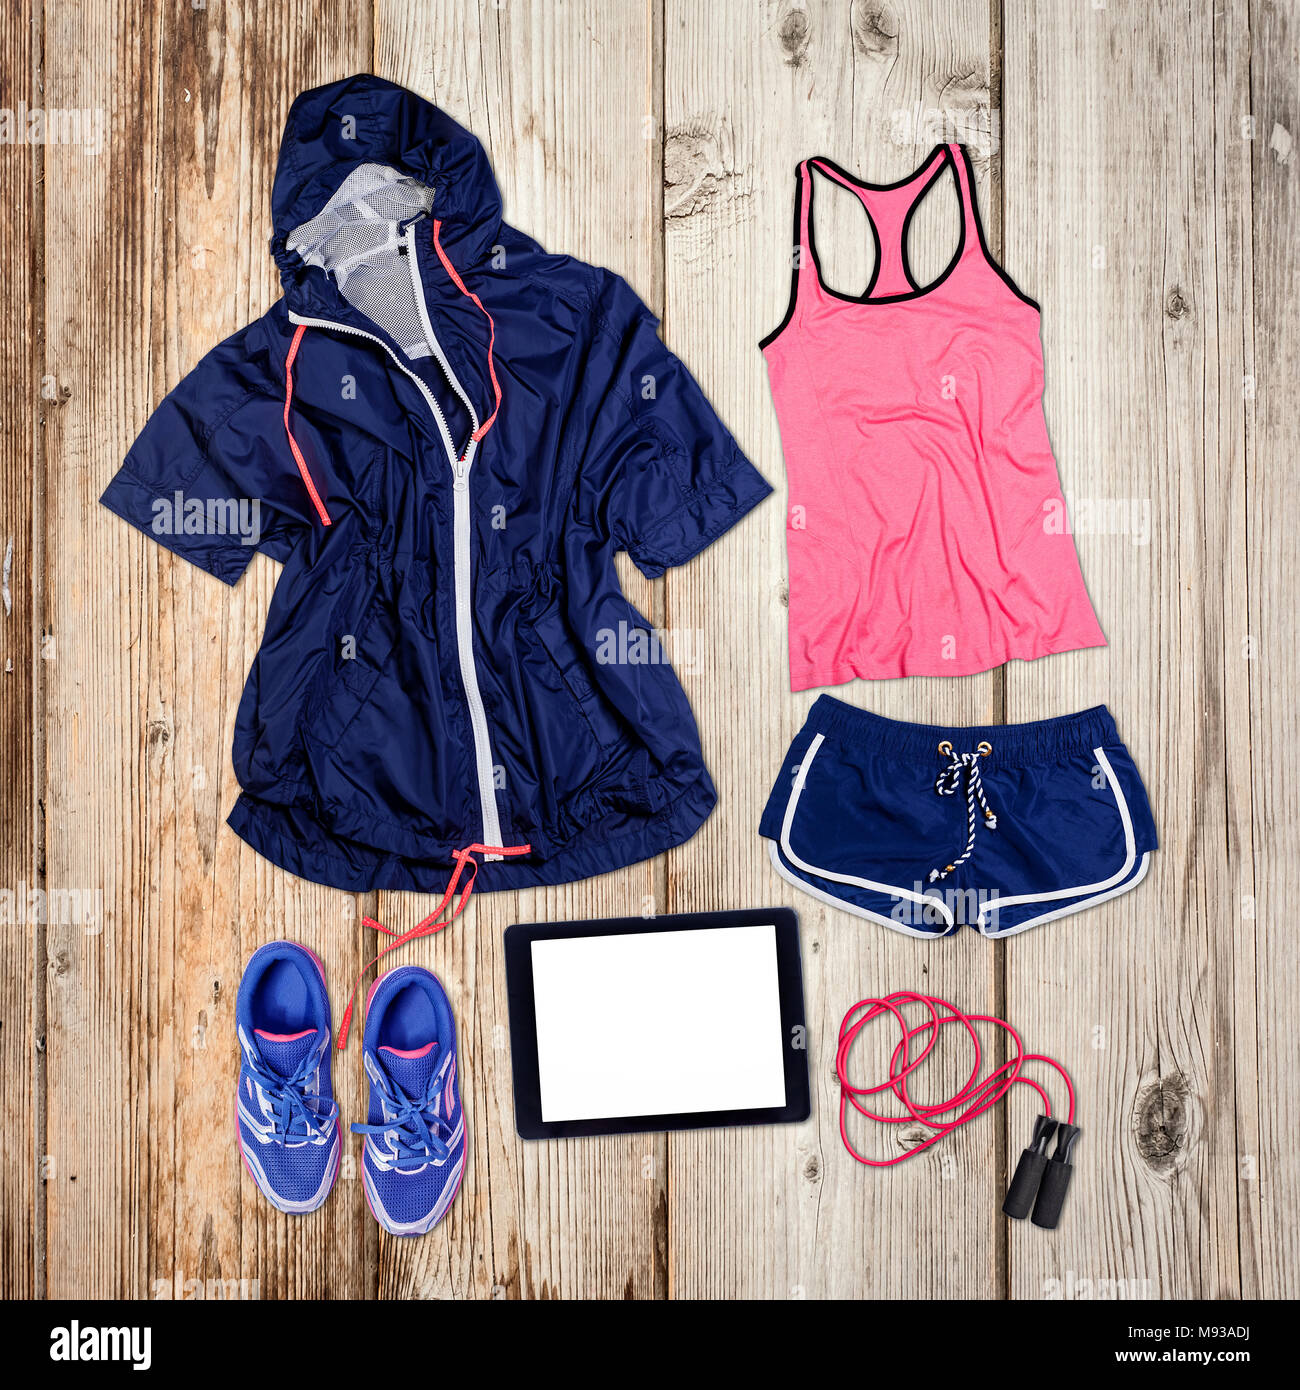 Sports outfit and equipment on wooden floor. - Stock Image